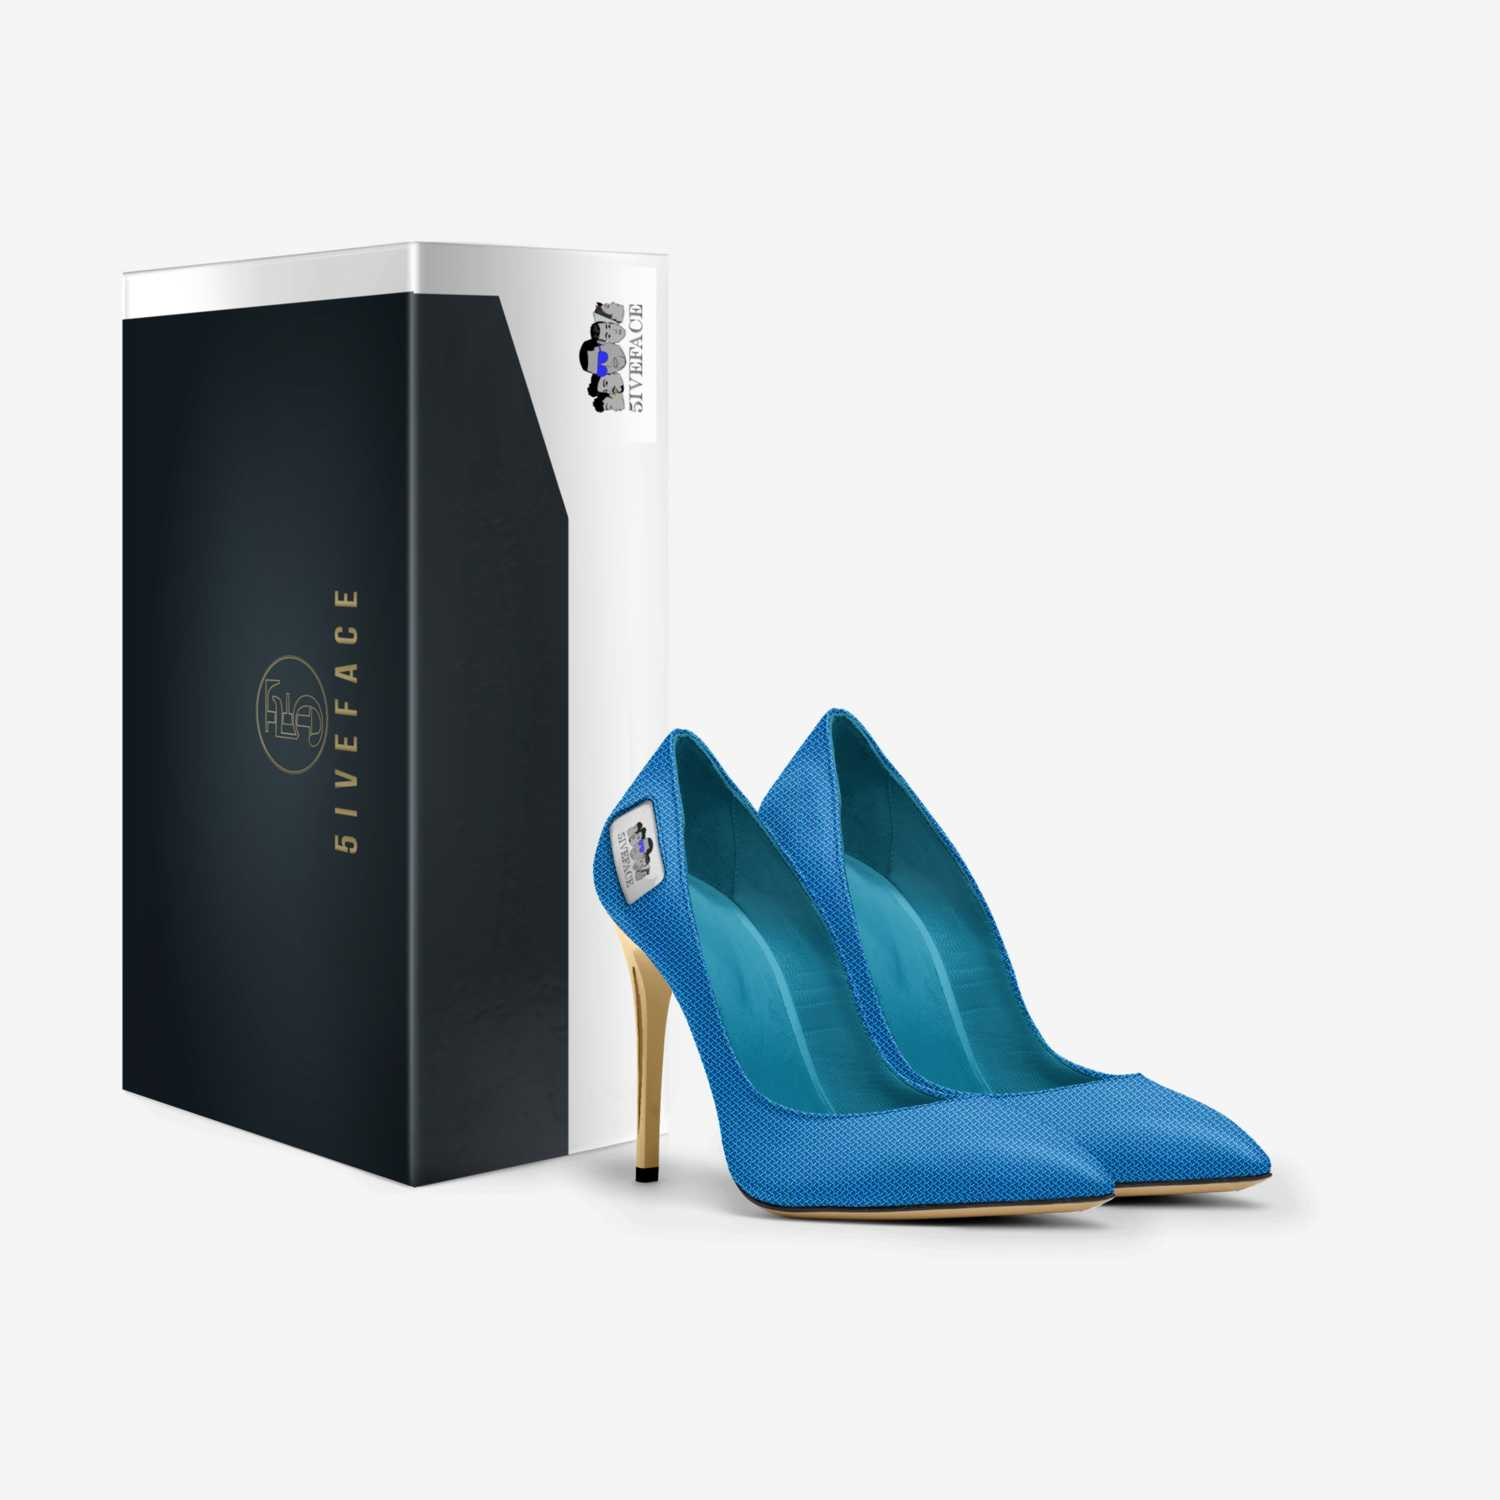 PINOCCHIO FULL CUT HIGH HEEL - 5iveFace